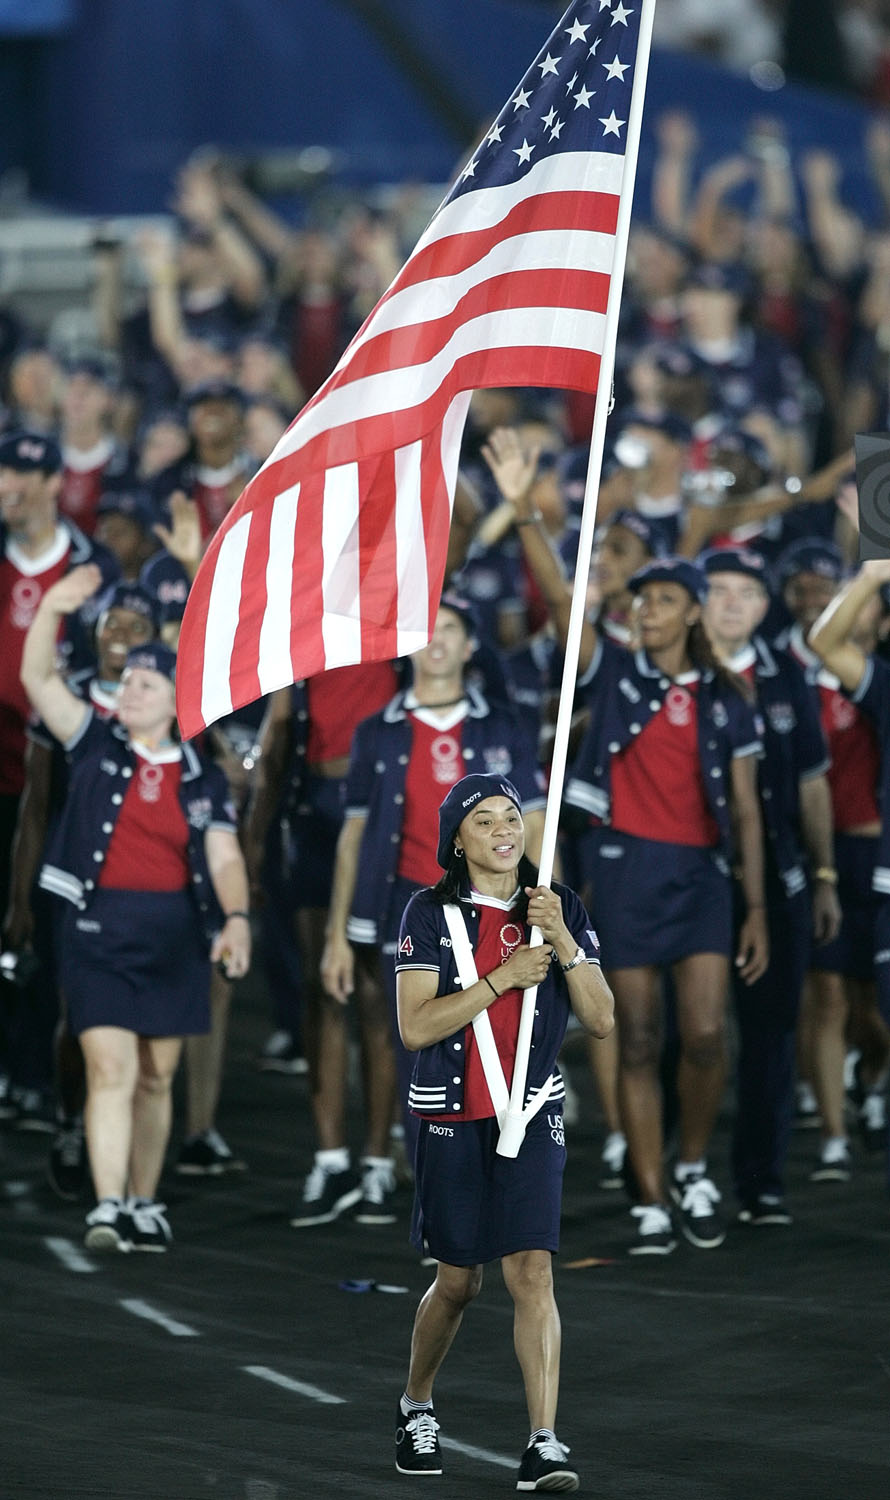 Basketball athlete Dawn Staley carries the U.S. national flag during the opening ceremony of the Athens 2004 Olympic Games.